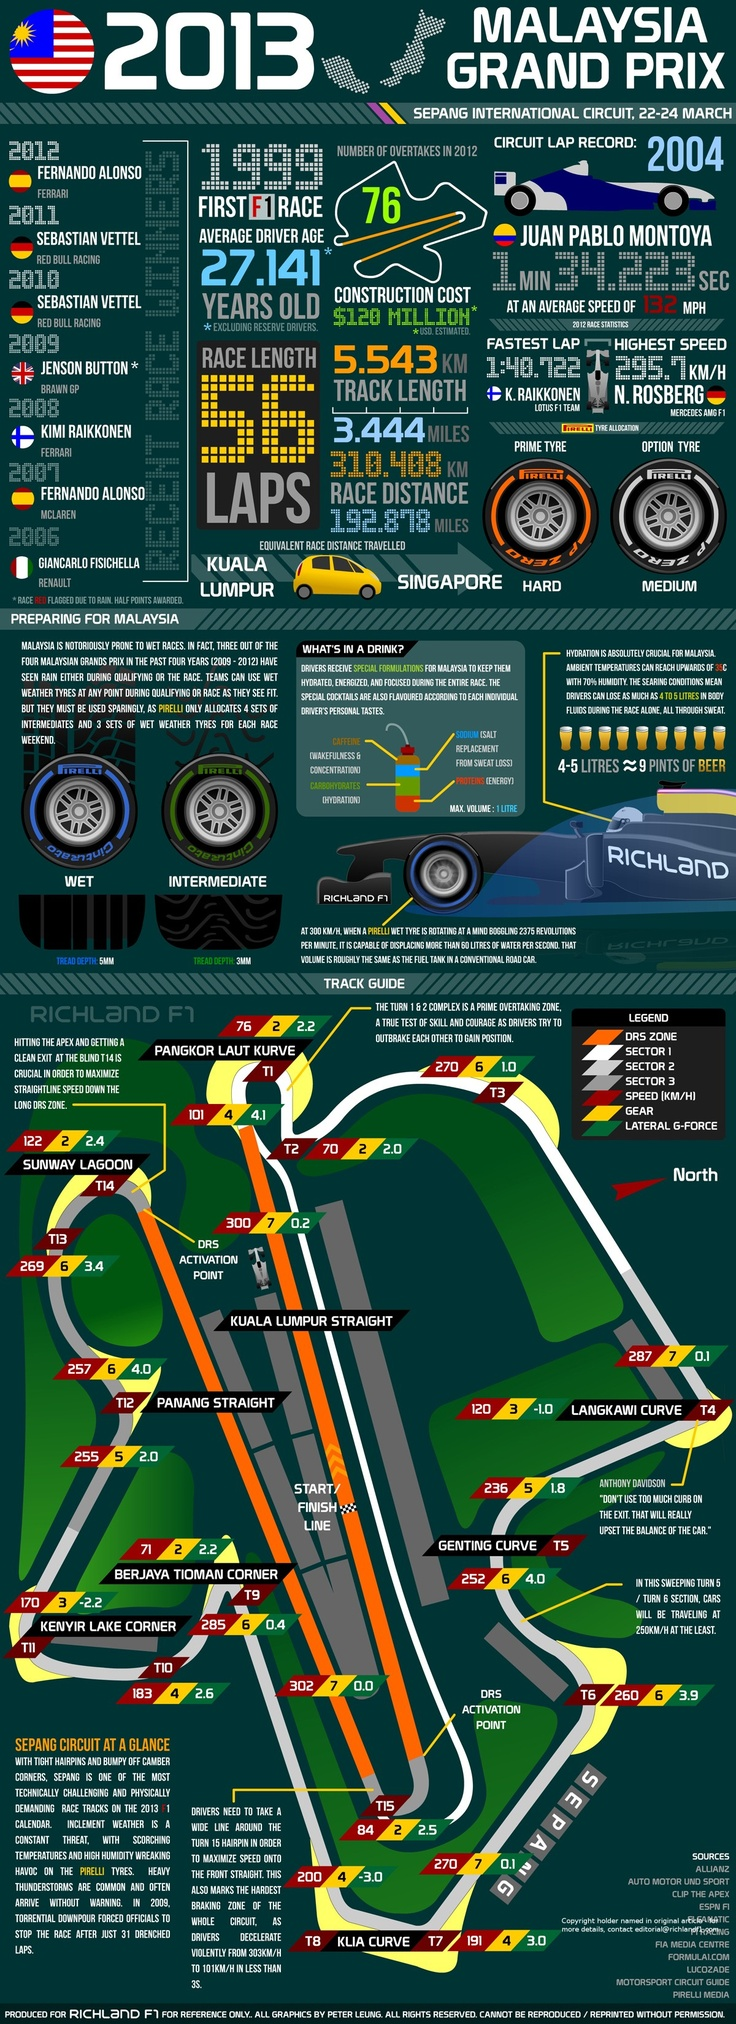 2013 Australia Grand Prix - Facts and Figures (via RichlandF1)